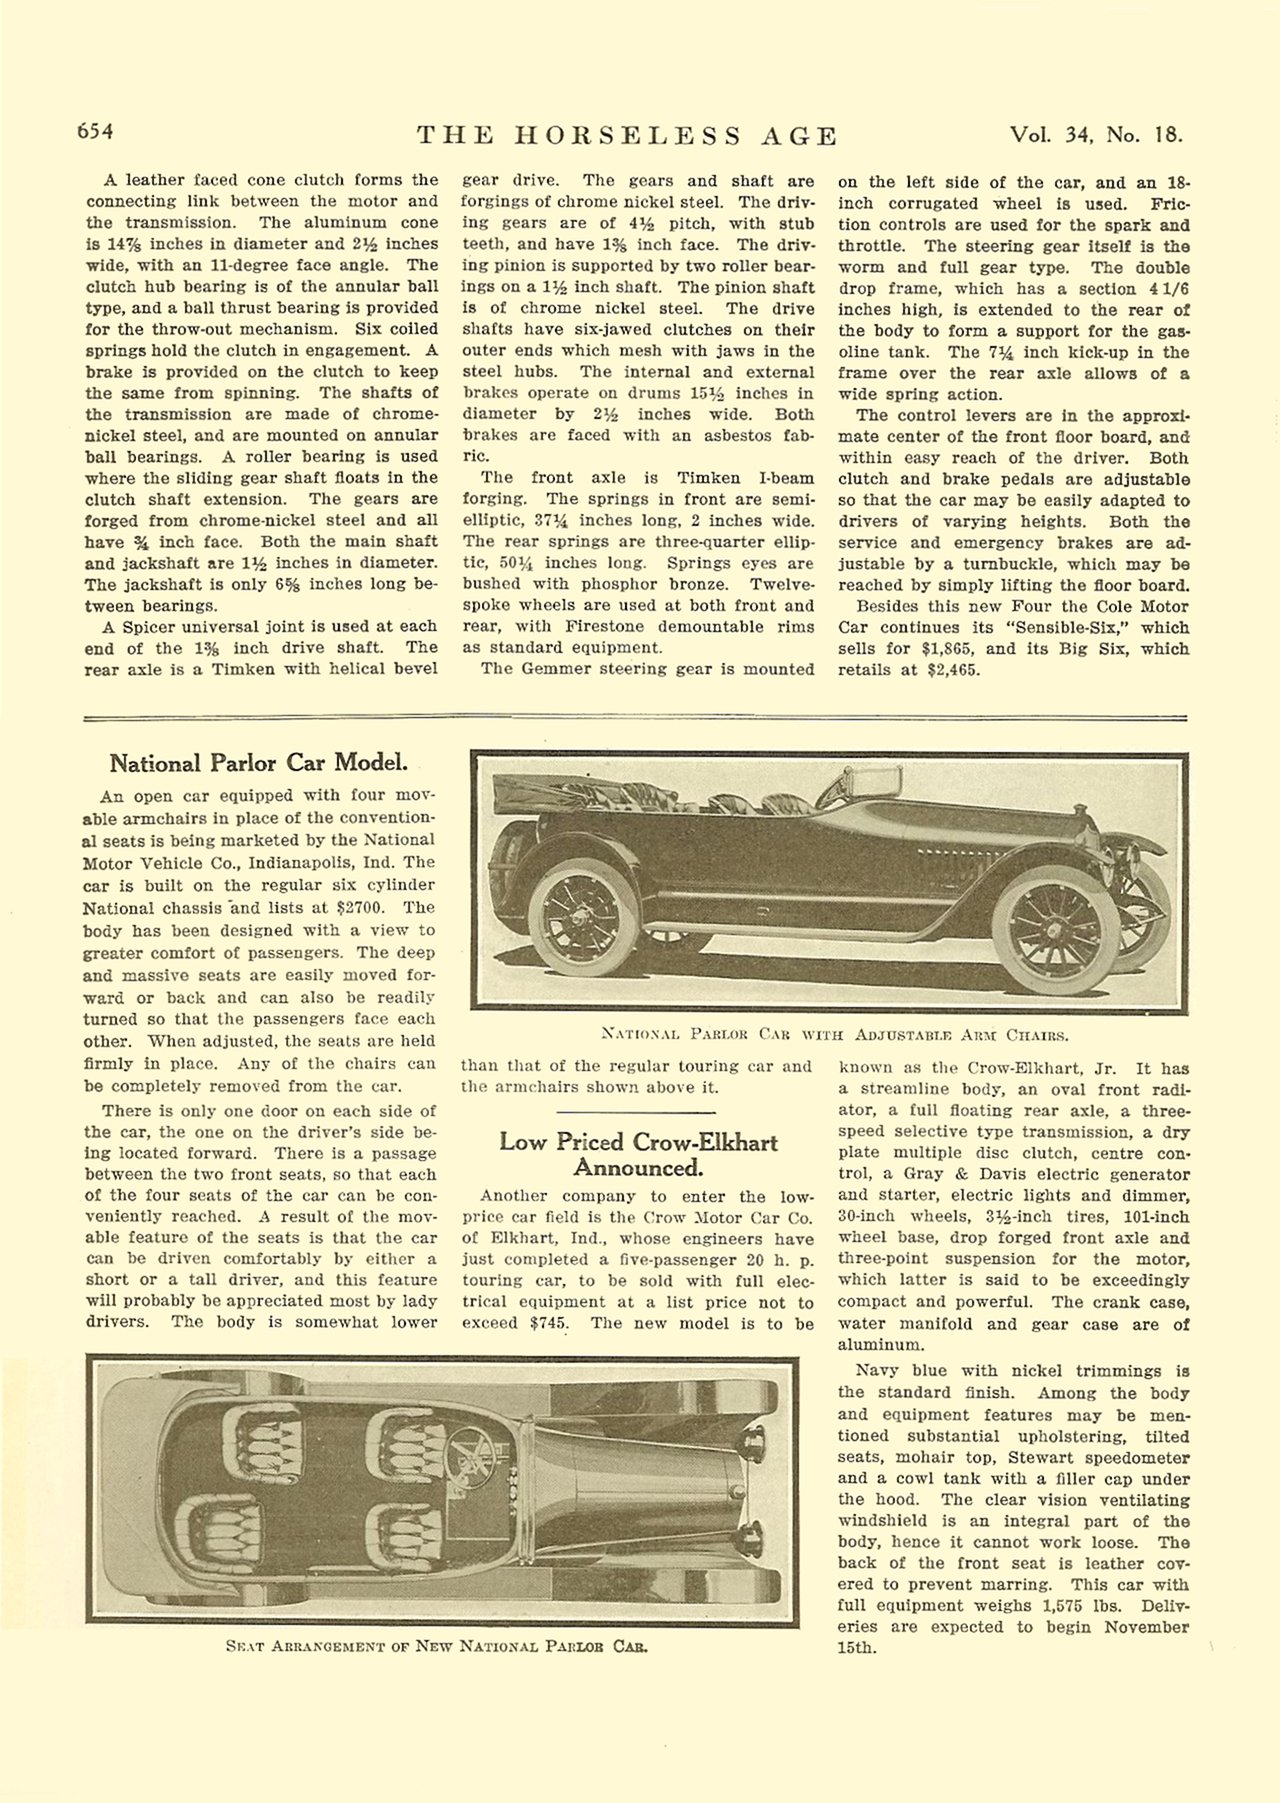 1914 10 28 NATIONAL National Parlor Car Model (article) THE HORSELESS AGE October 28, 1914 Vol. 34 No. 18 9″x12″ page 654